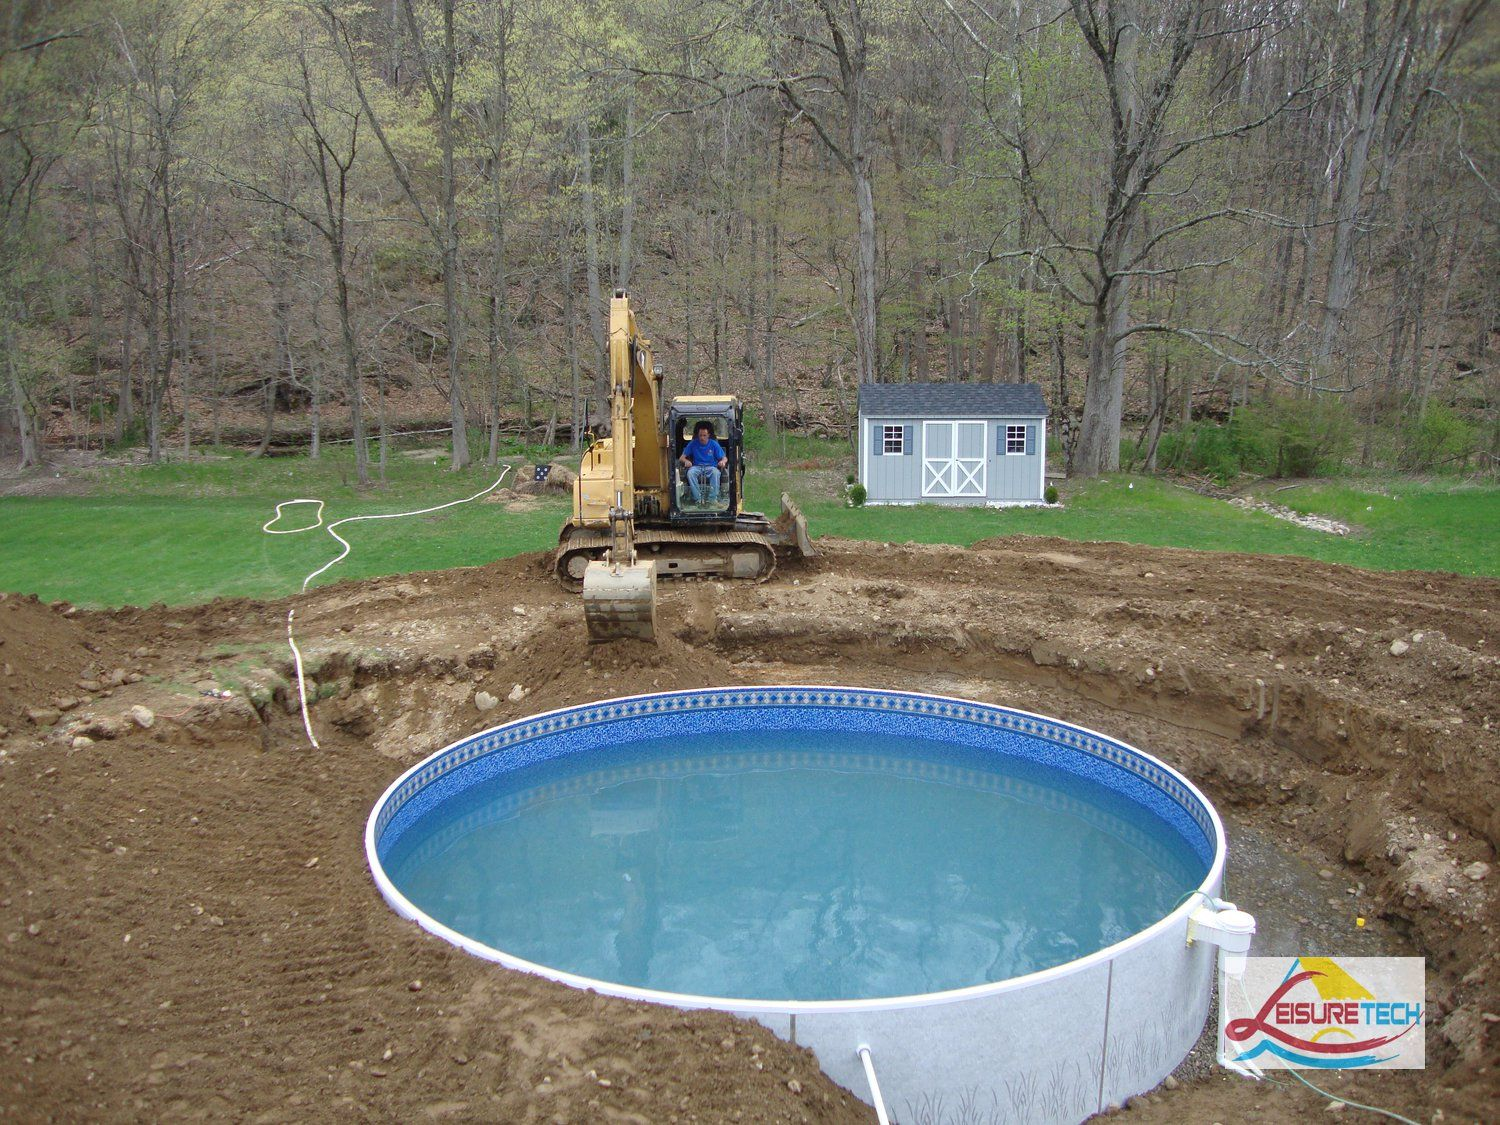 Putting Aboveground Pool In The Ground Above Ground Pool Installation Sup Above Ground Pool Landscaping Cheap Above Ground Pool Above Ground Swimming Pools